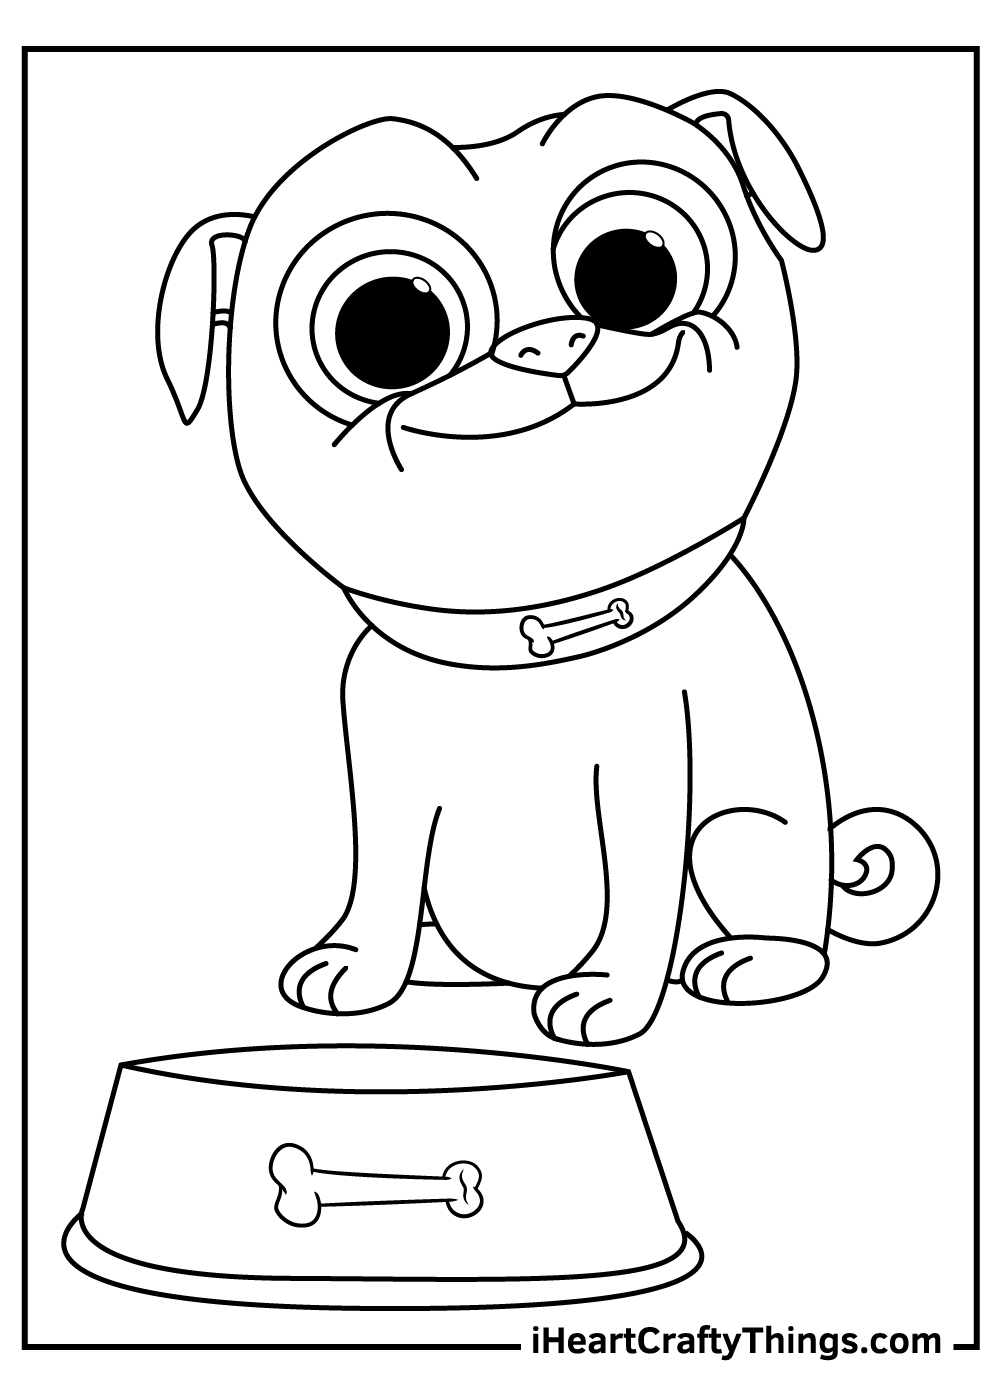 puppy dog pals coloring updated arts integration lesson plans craft kits for teenage girl coloring pages Puppy Dog Pals Coloring Page